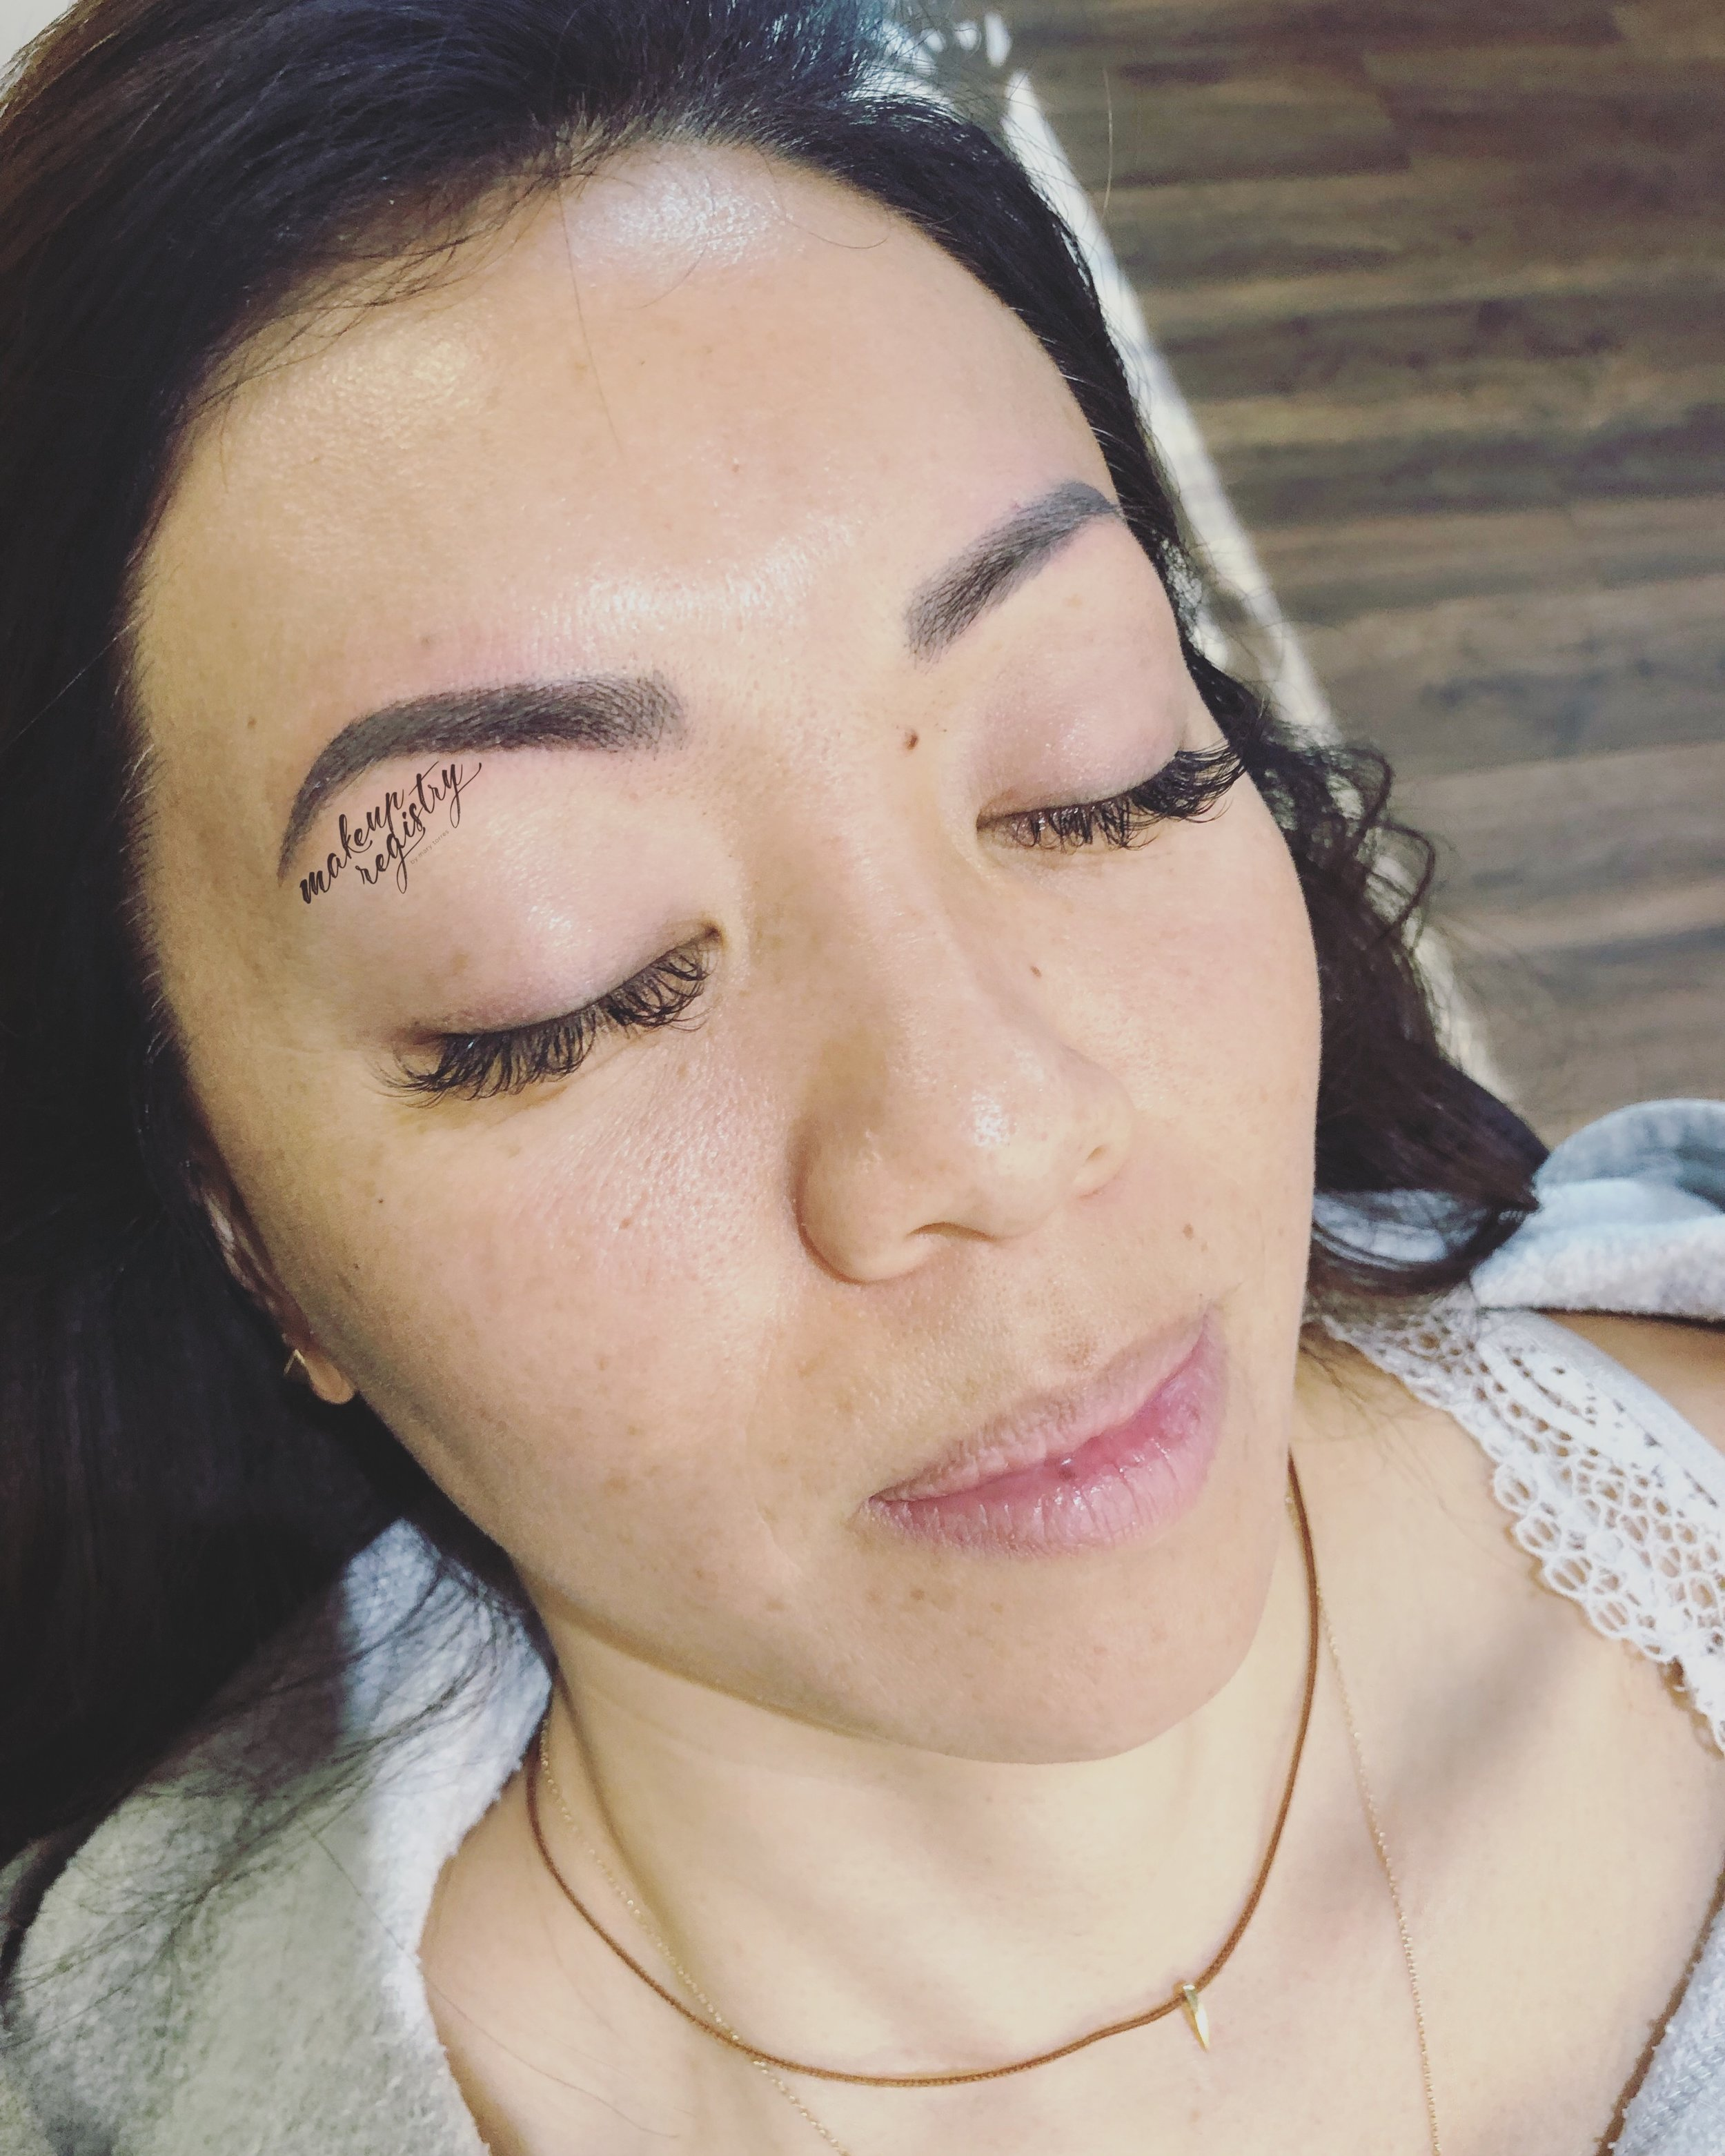 Learn how to serve others in the art of Microblading so you can make more money!